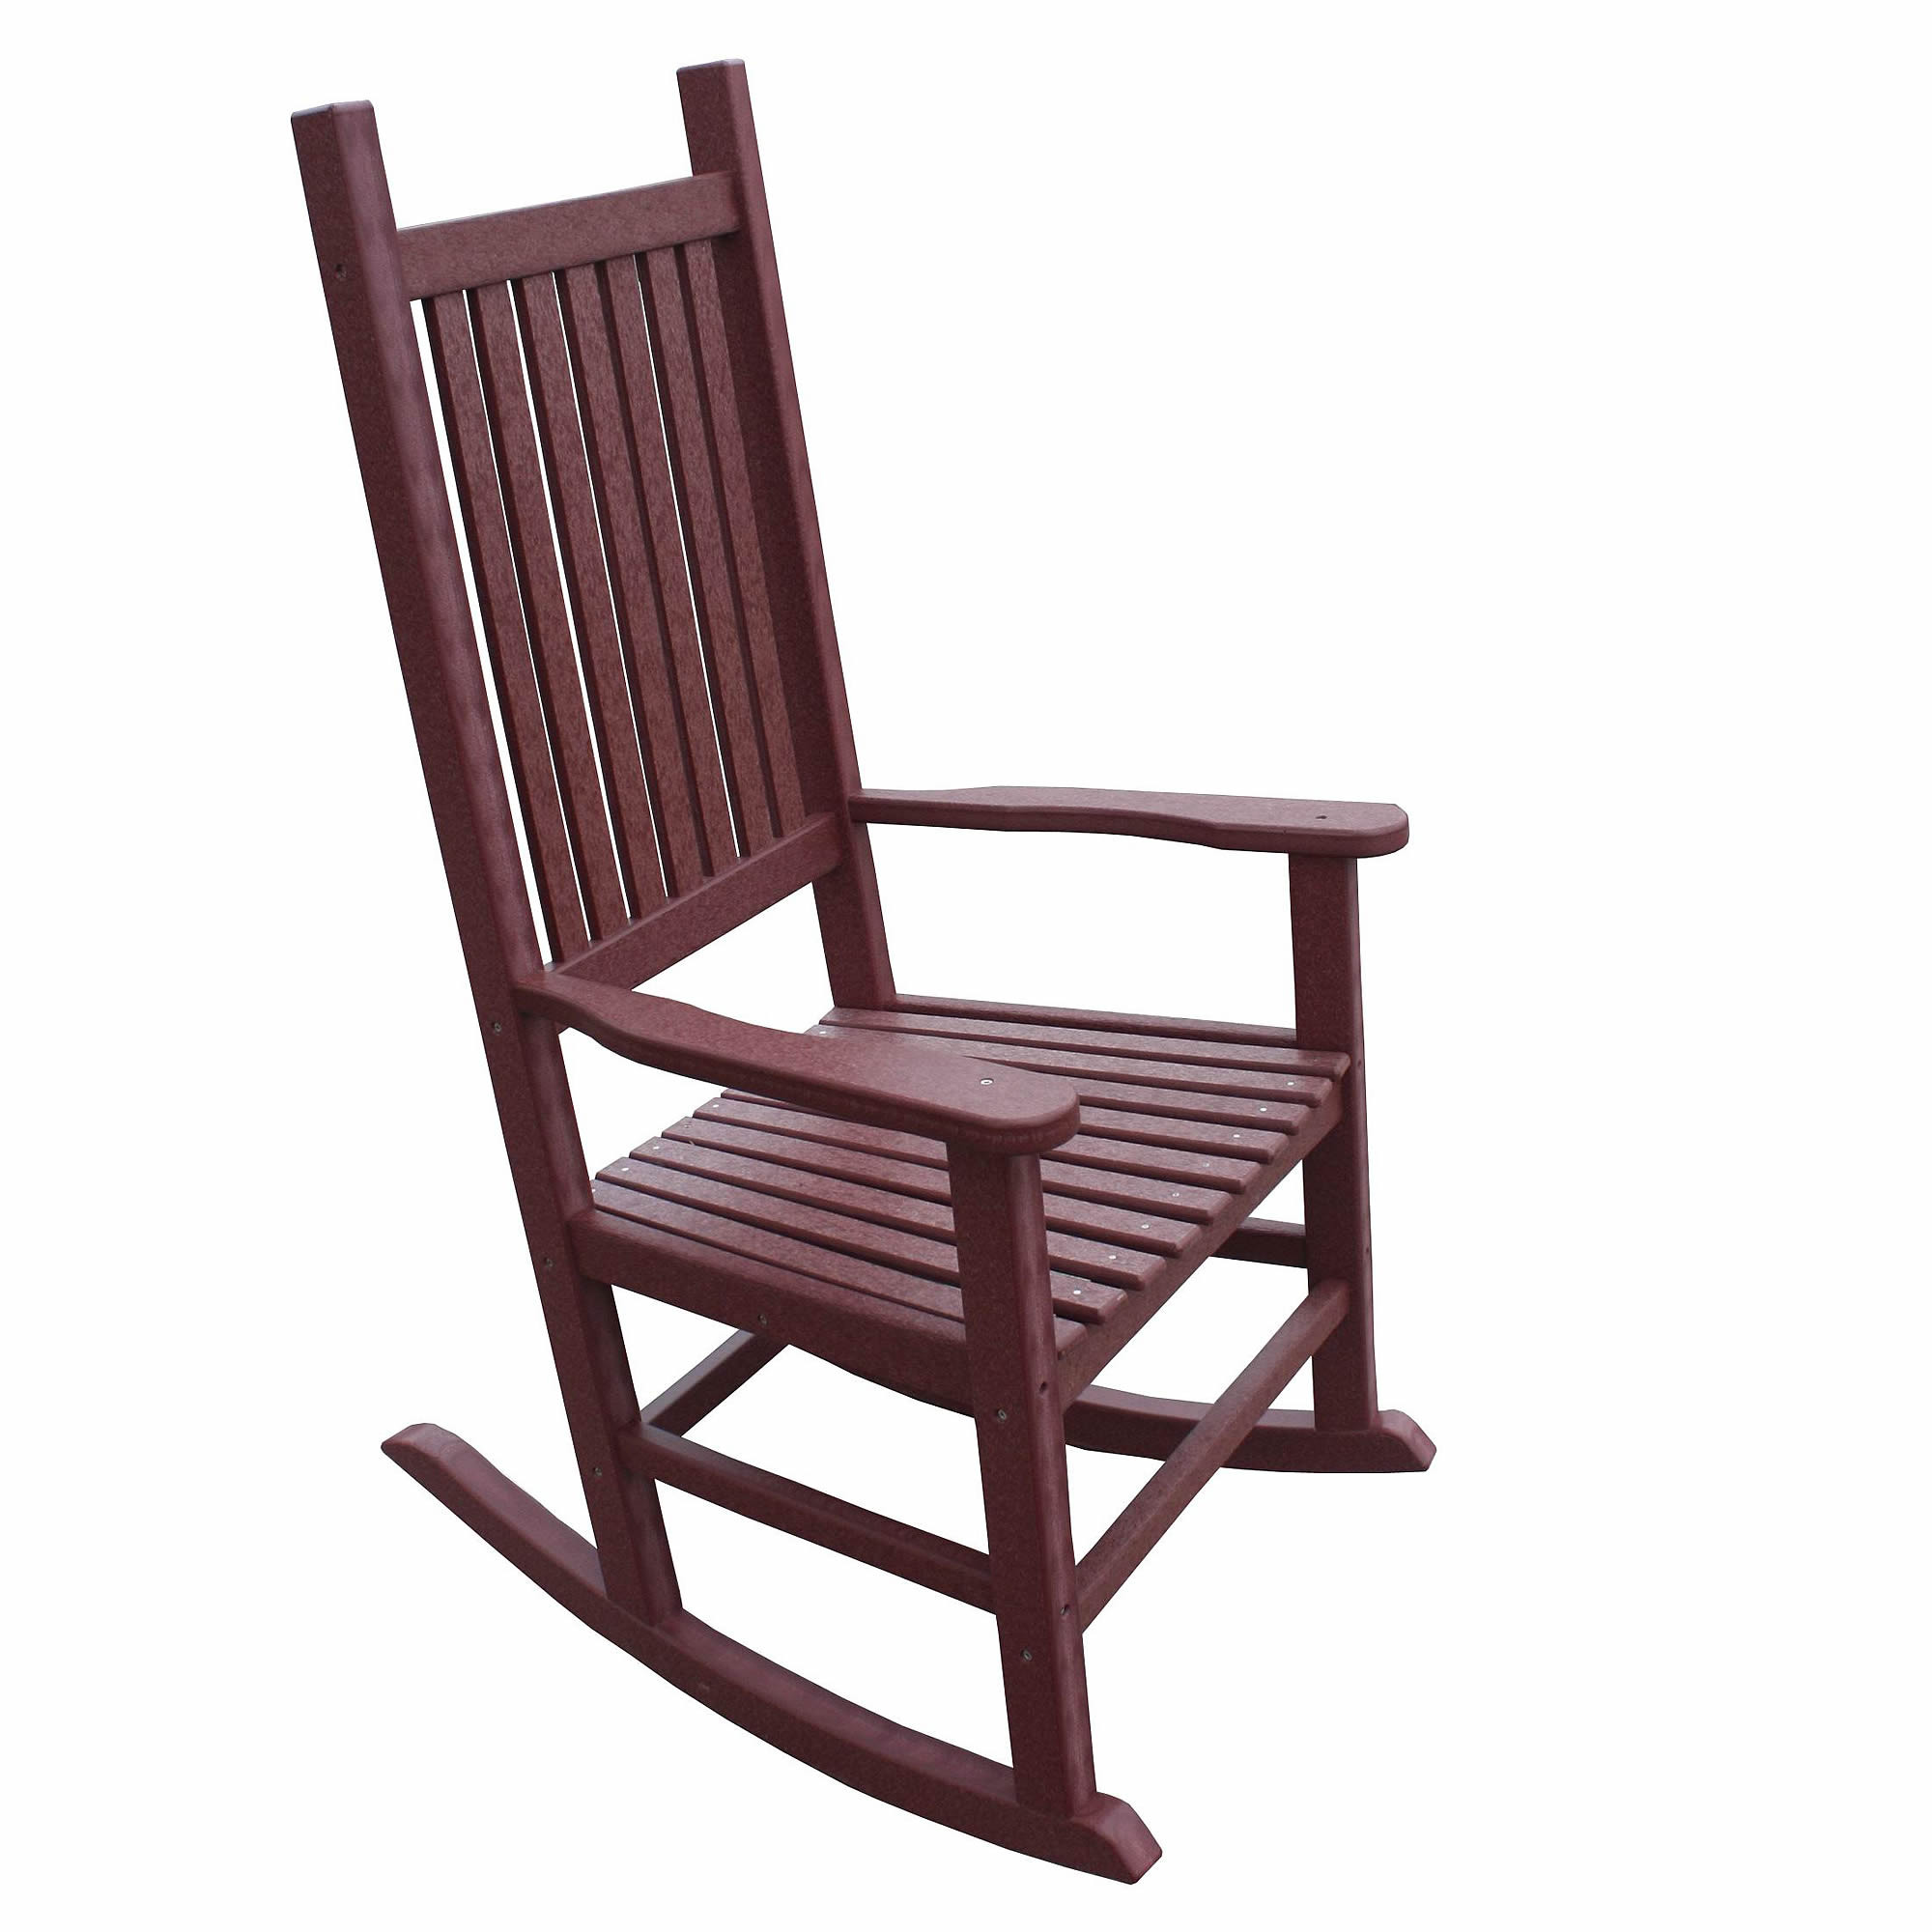 Recycled Poly Lumber President's Rocker